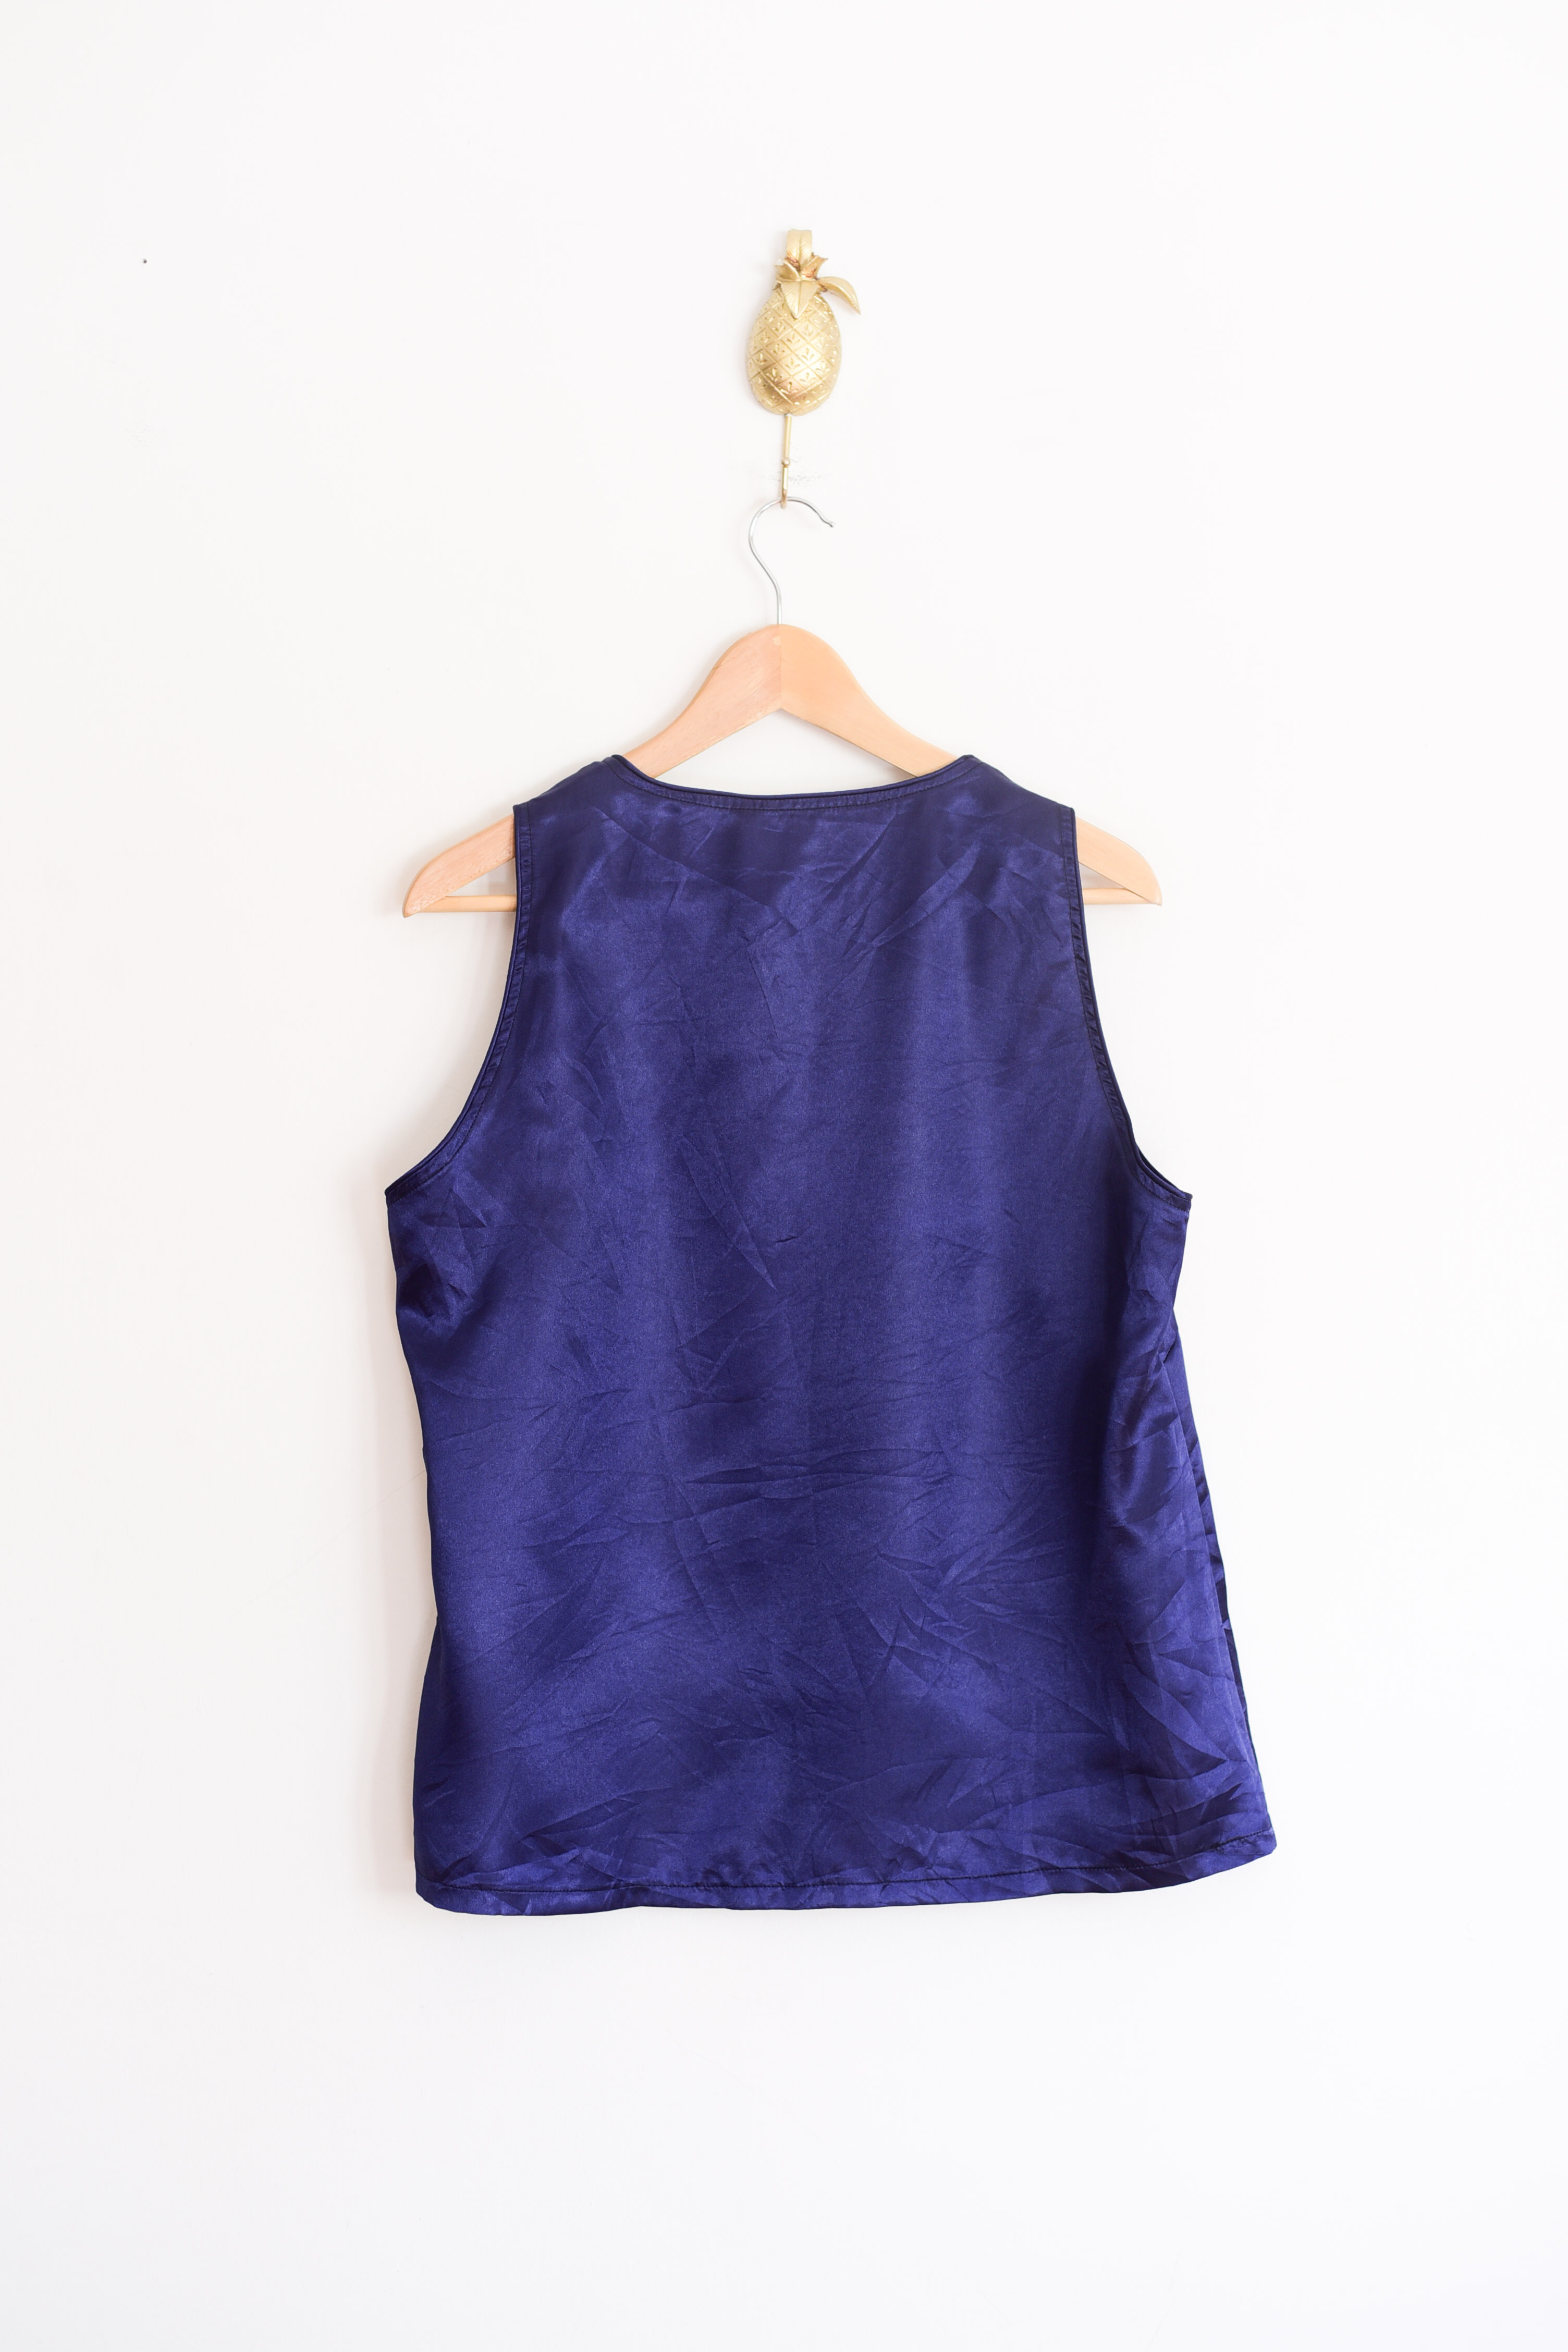 Top blue satin